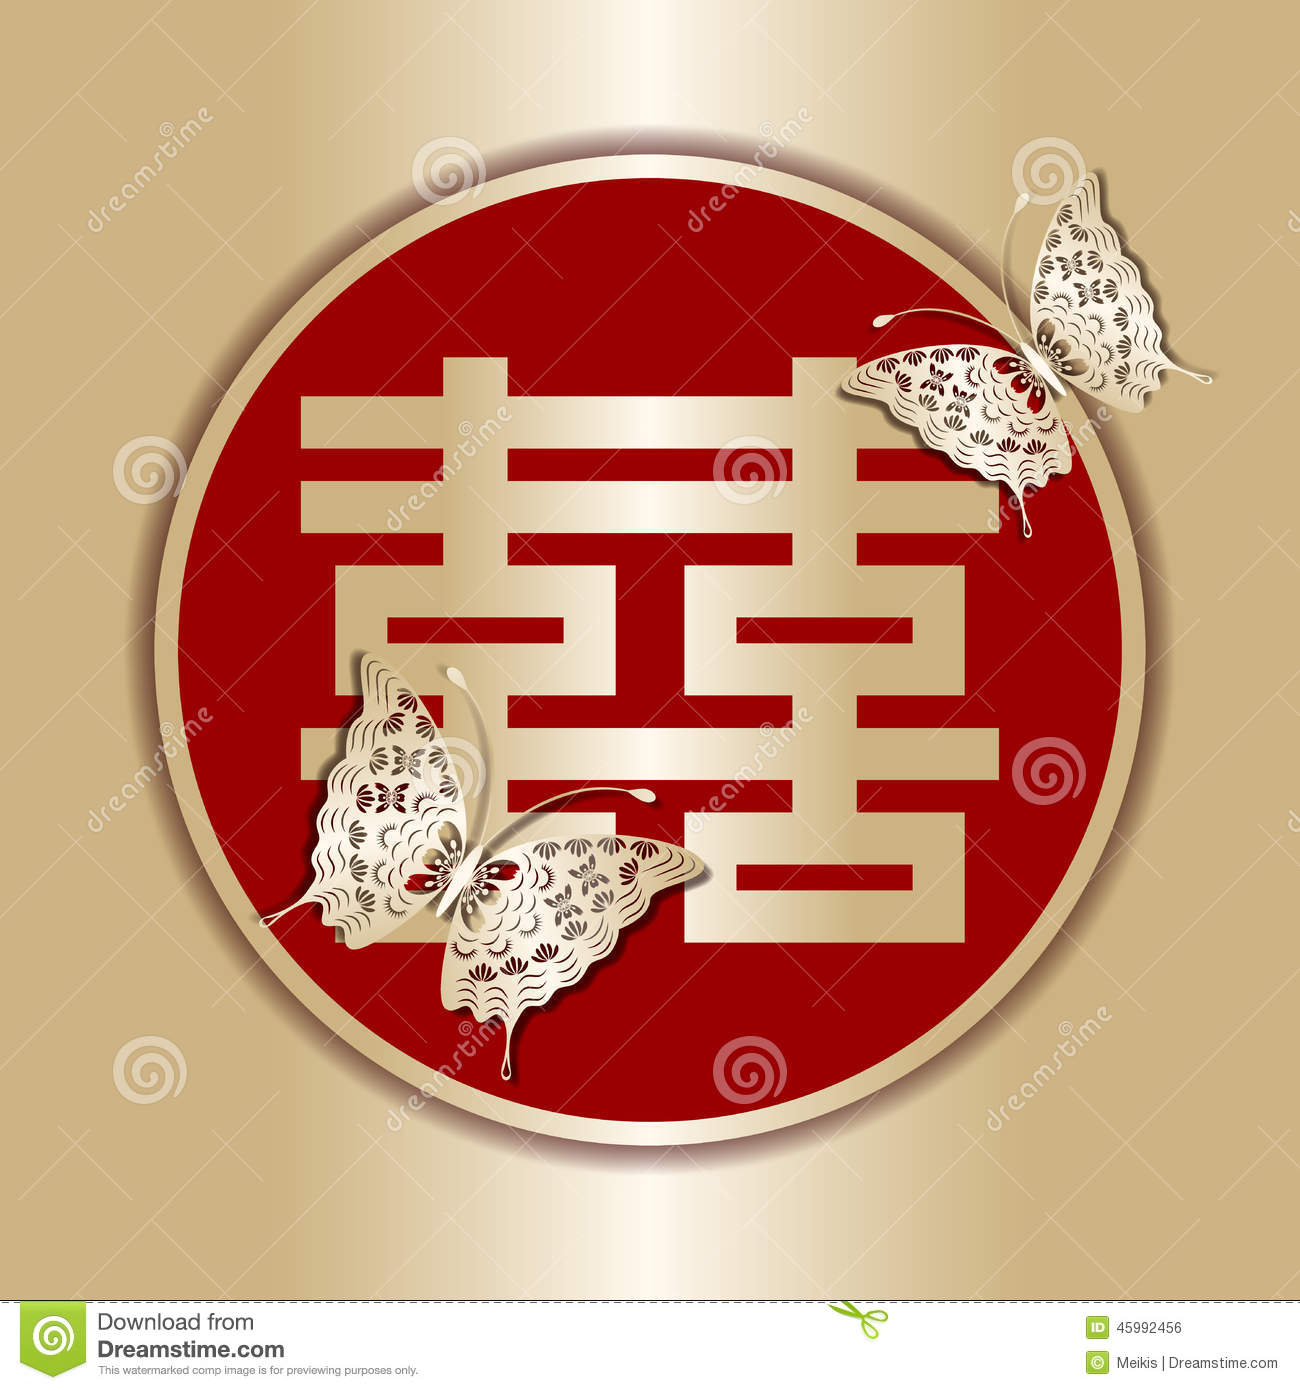 Golden double happiness chinese symbol of marriage stock vector golden double happiness chinese symbol of marriage biocorpaavc Images